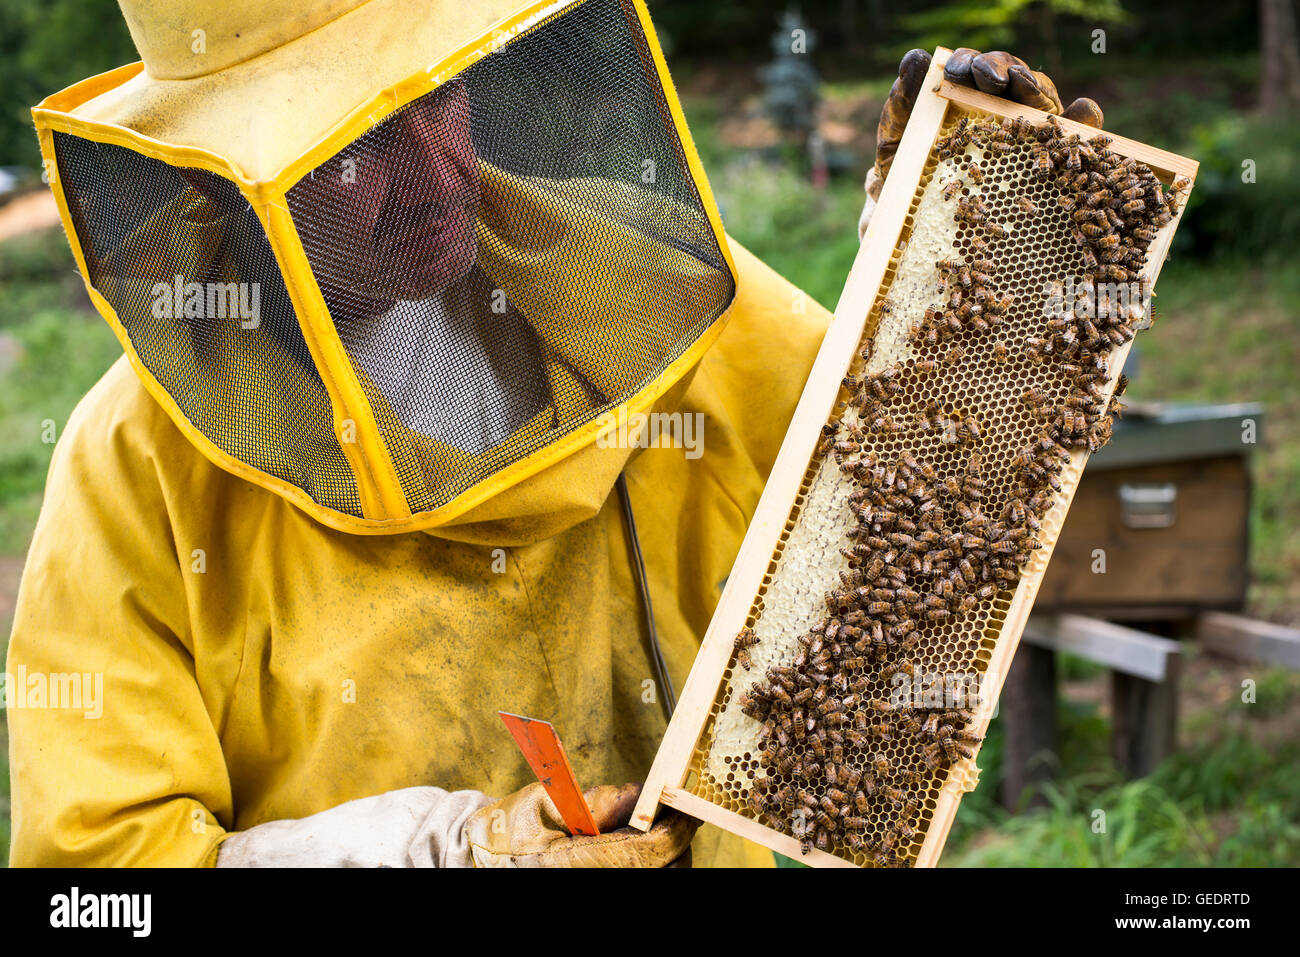 Beekeeper Holding Honeycomb of Bees - Stock Image